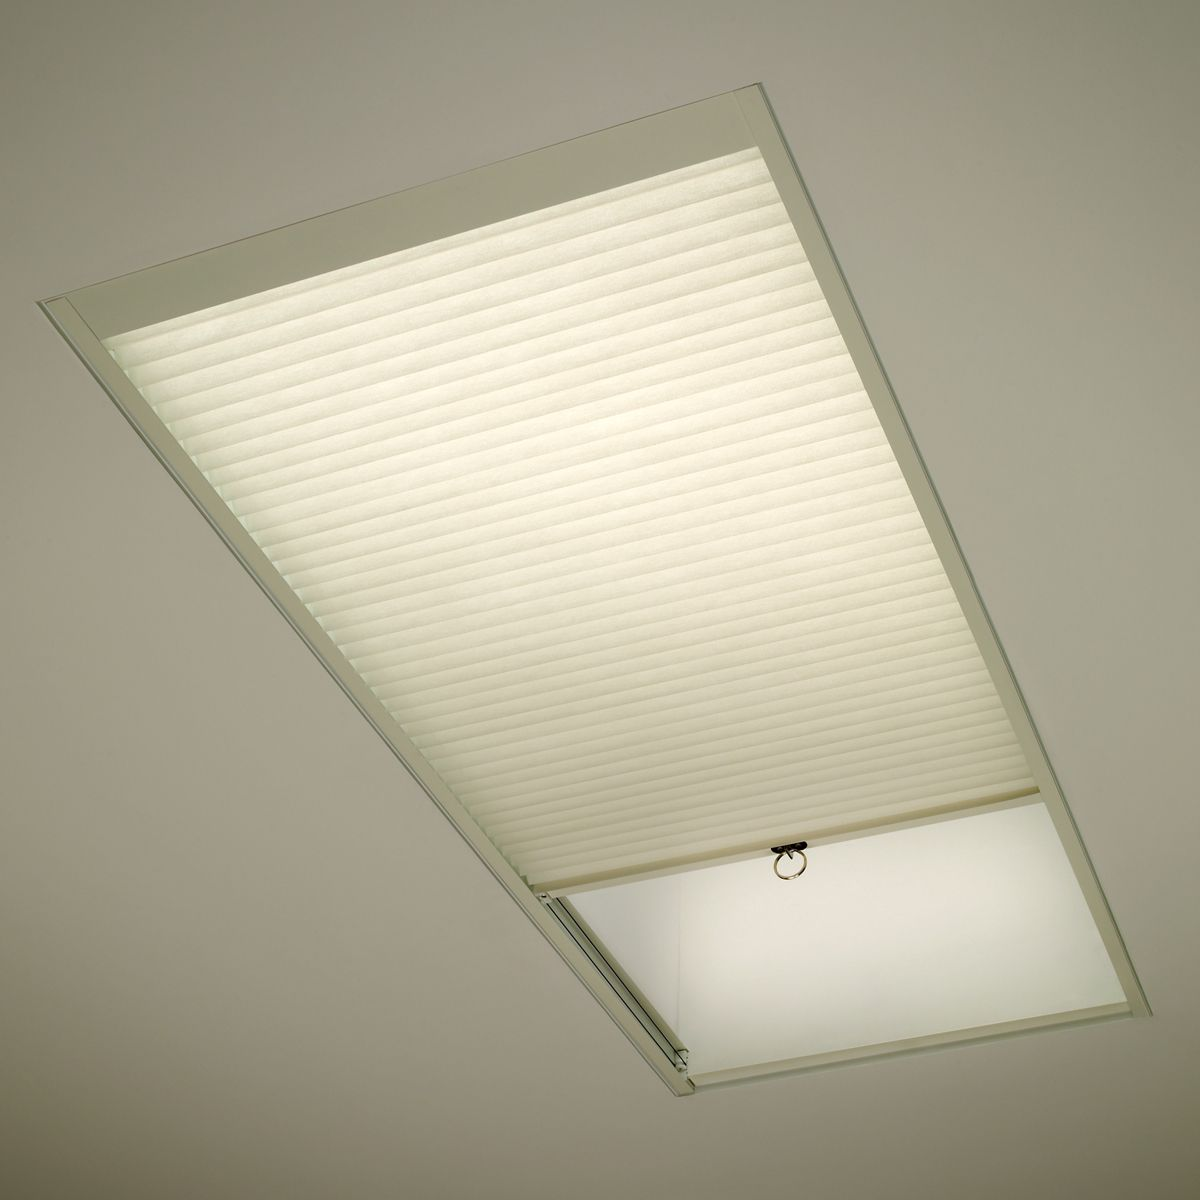 Have a skylight? The Louver Shop and Hunter Douglas have the perfect window  covering for